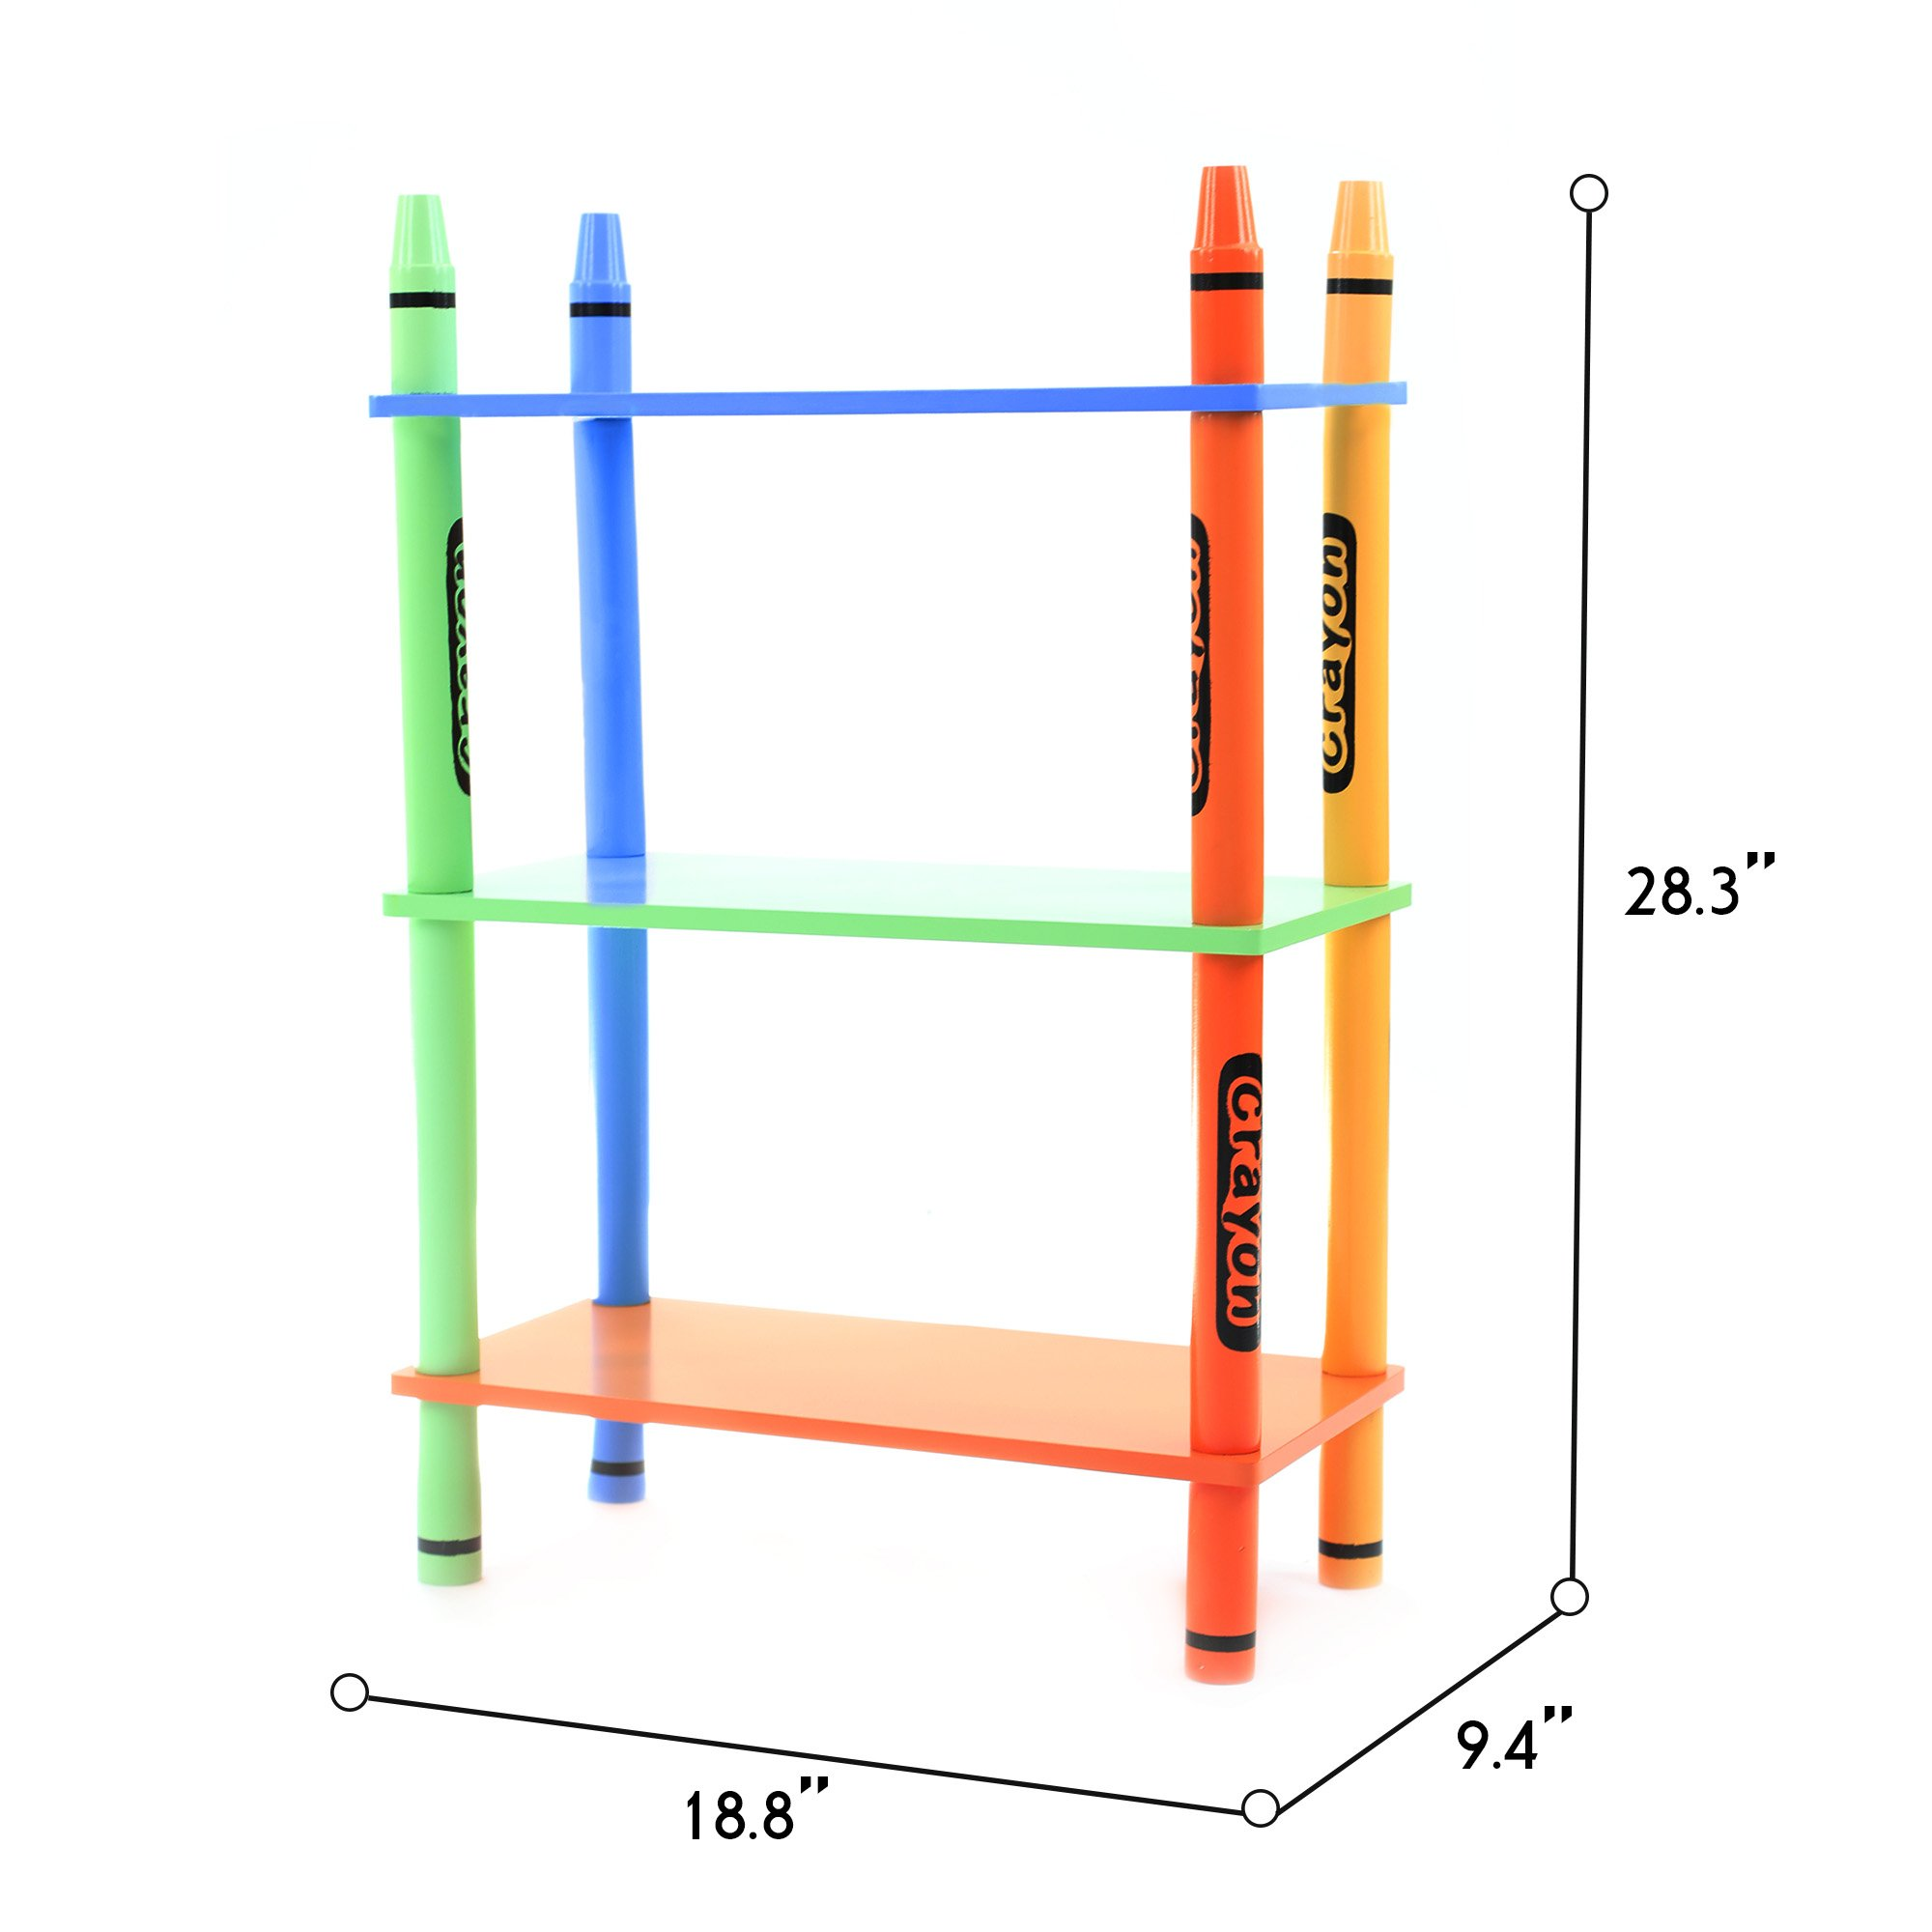 Toddler Size - Bebe Style Kids Wooden 3 Tiered Shelves for Children - Crayon Theme - Colorful, Stylish, and Easy to Assemble Sturdy Material